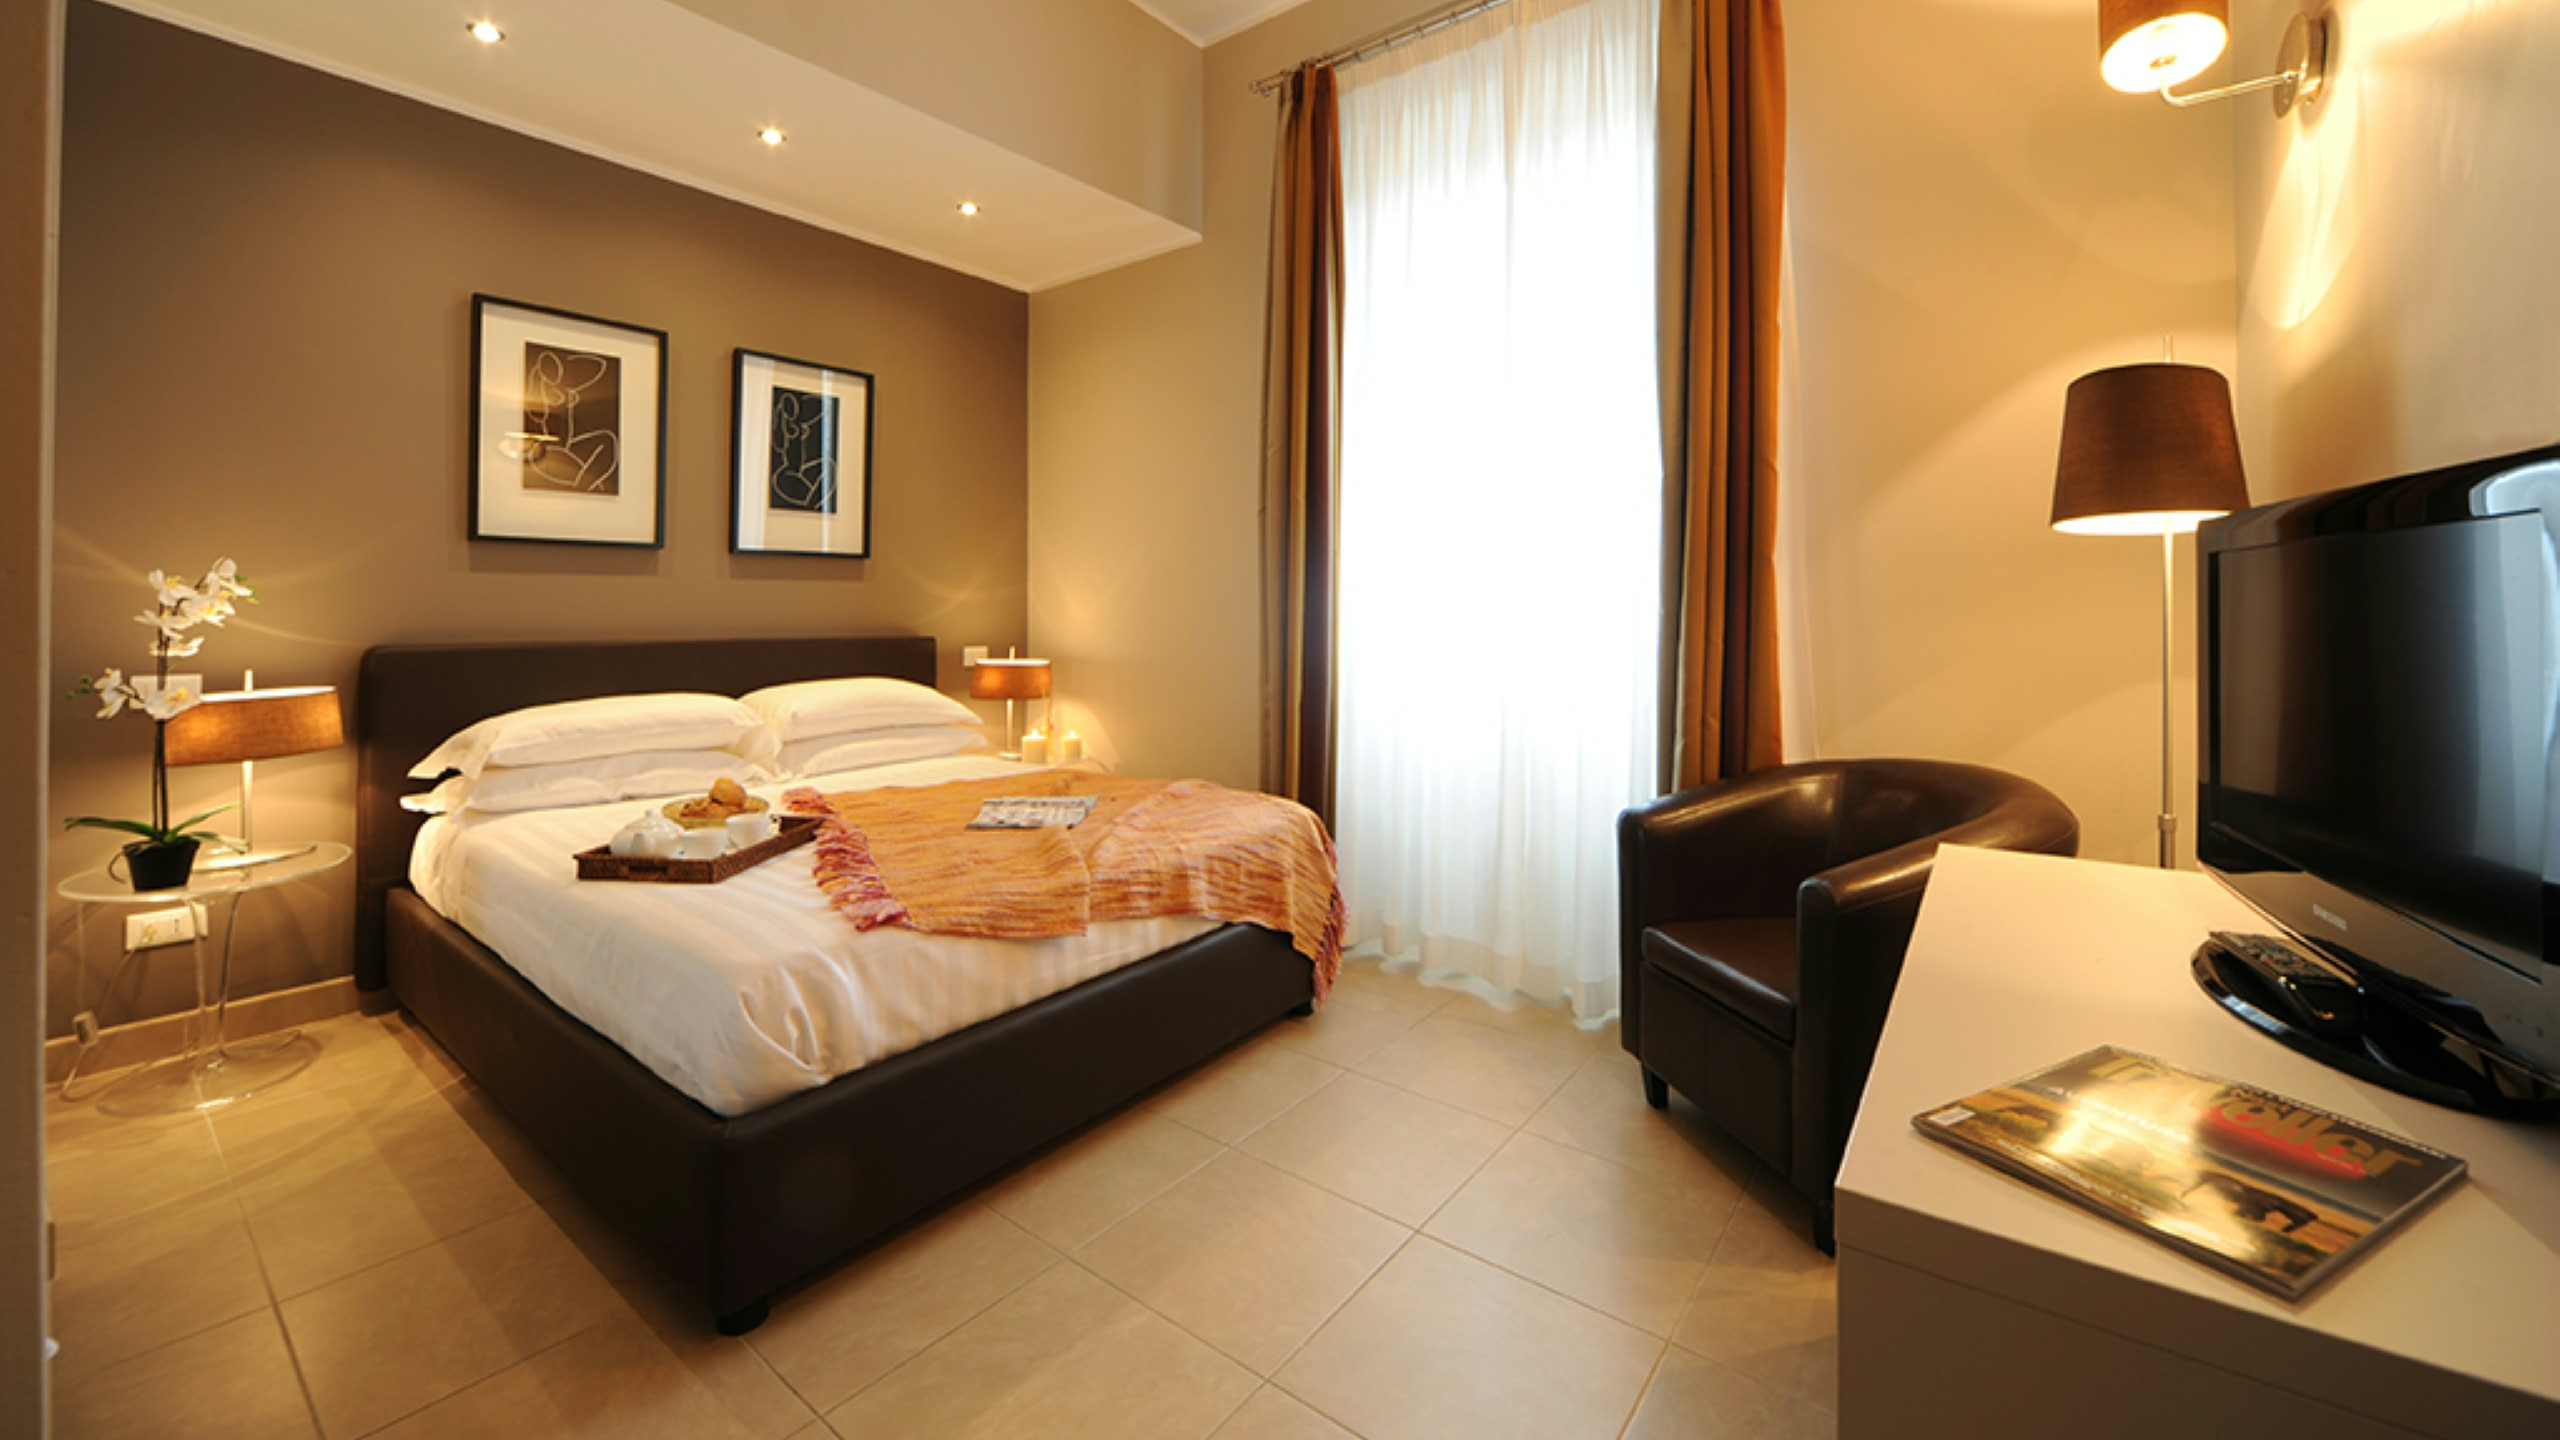 residence-trianon-rome-rooms-4082